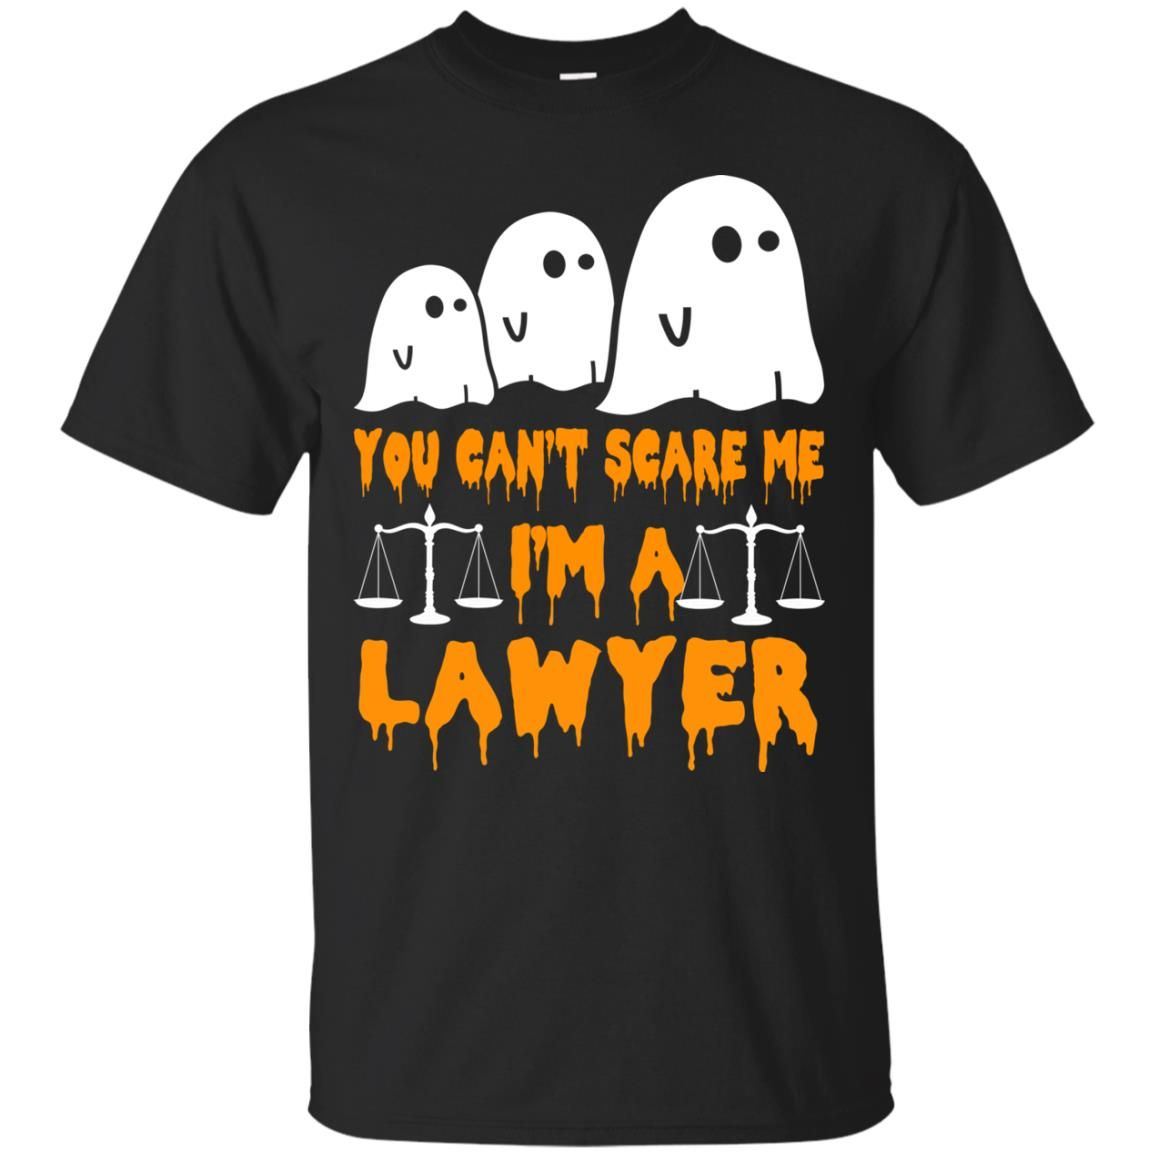 image 631 - You can't scare me I'm a Lawyer shirt, hoodie, tank